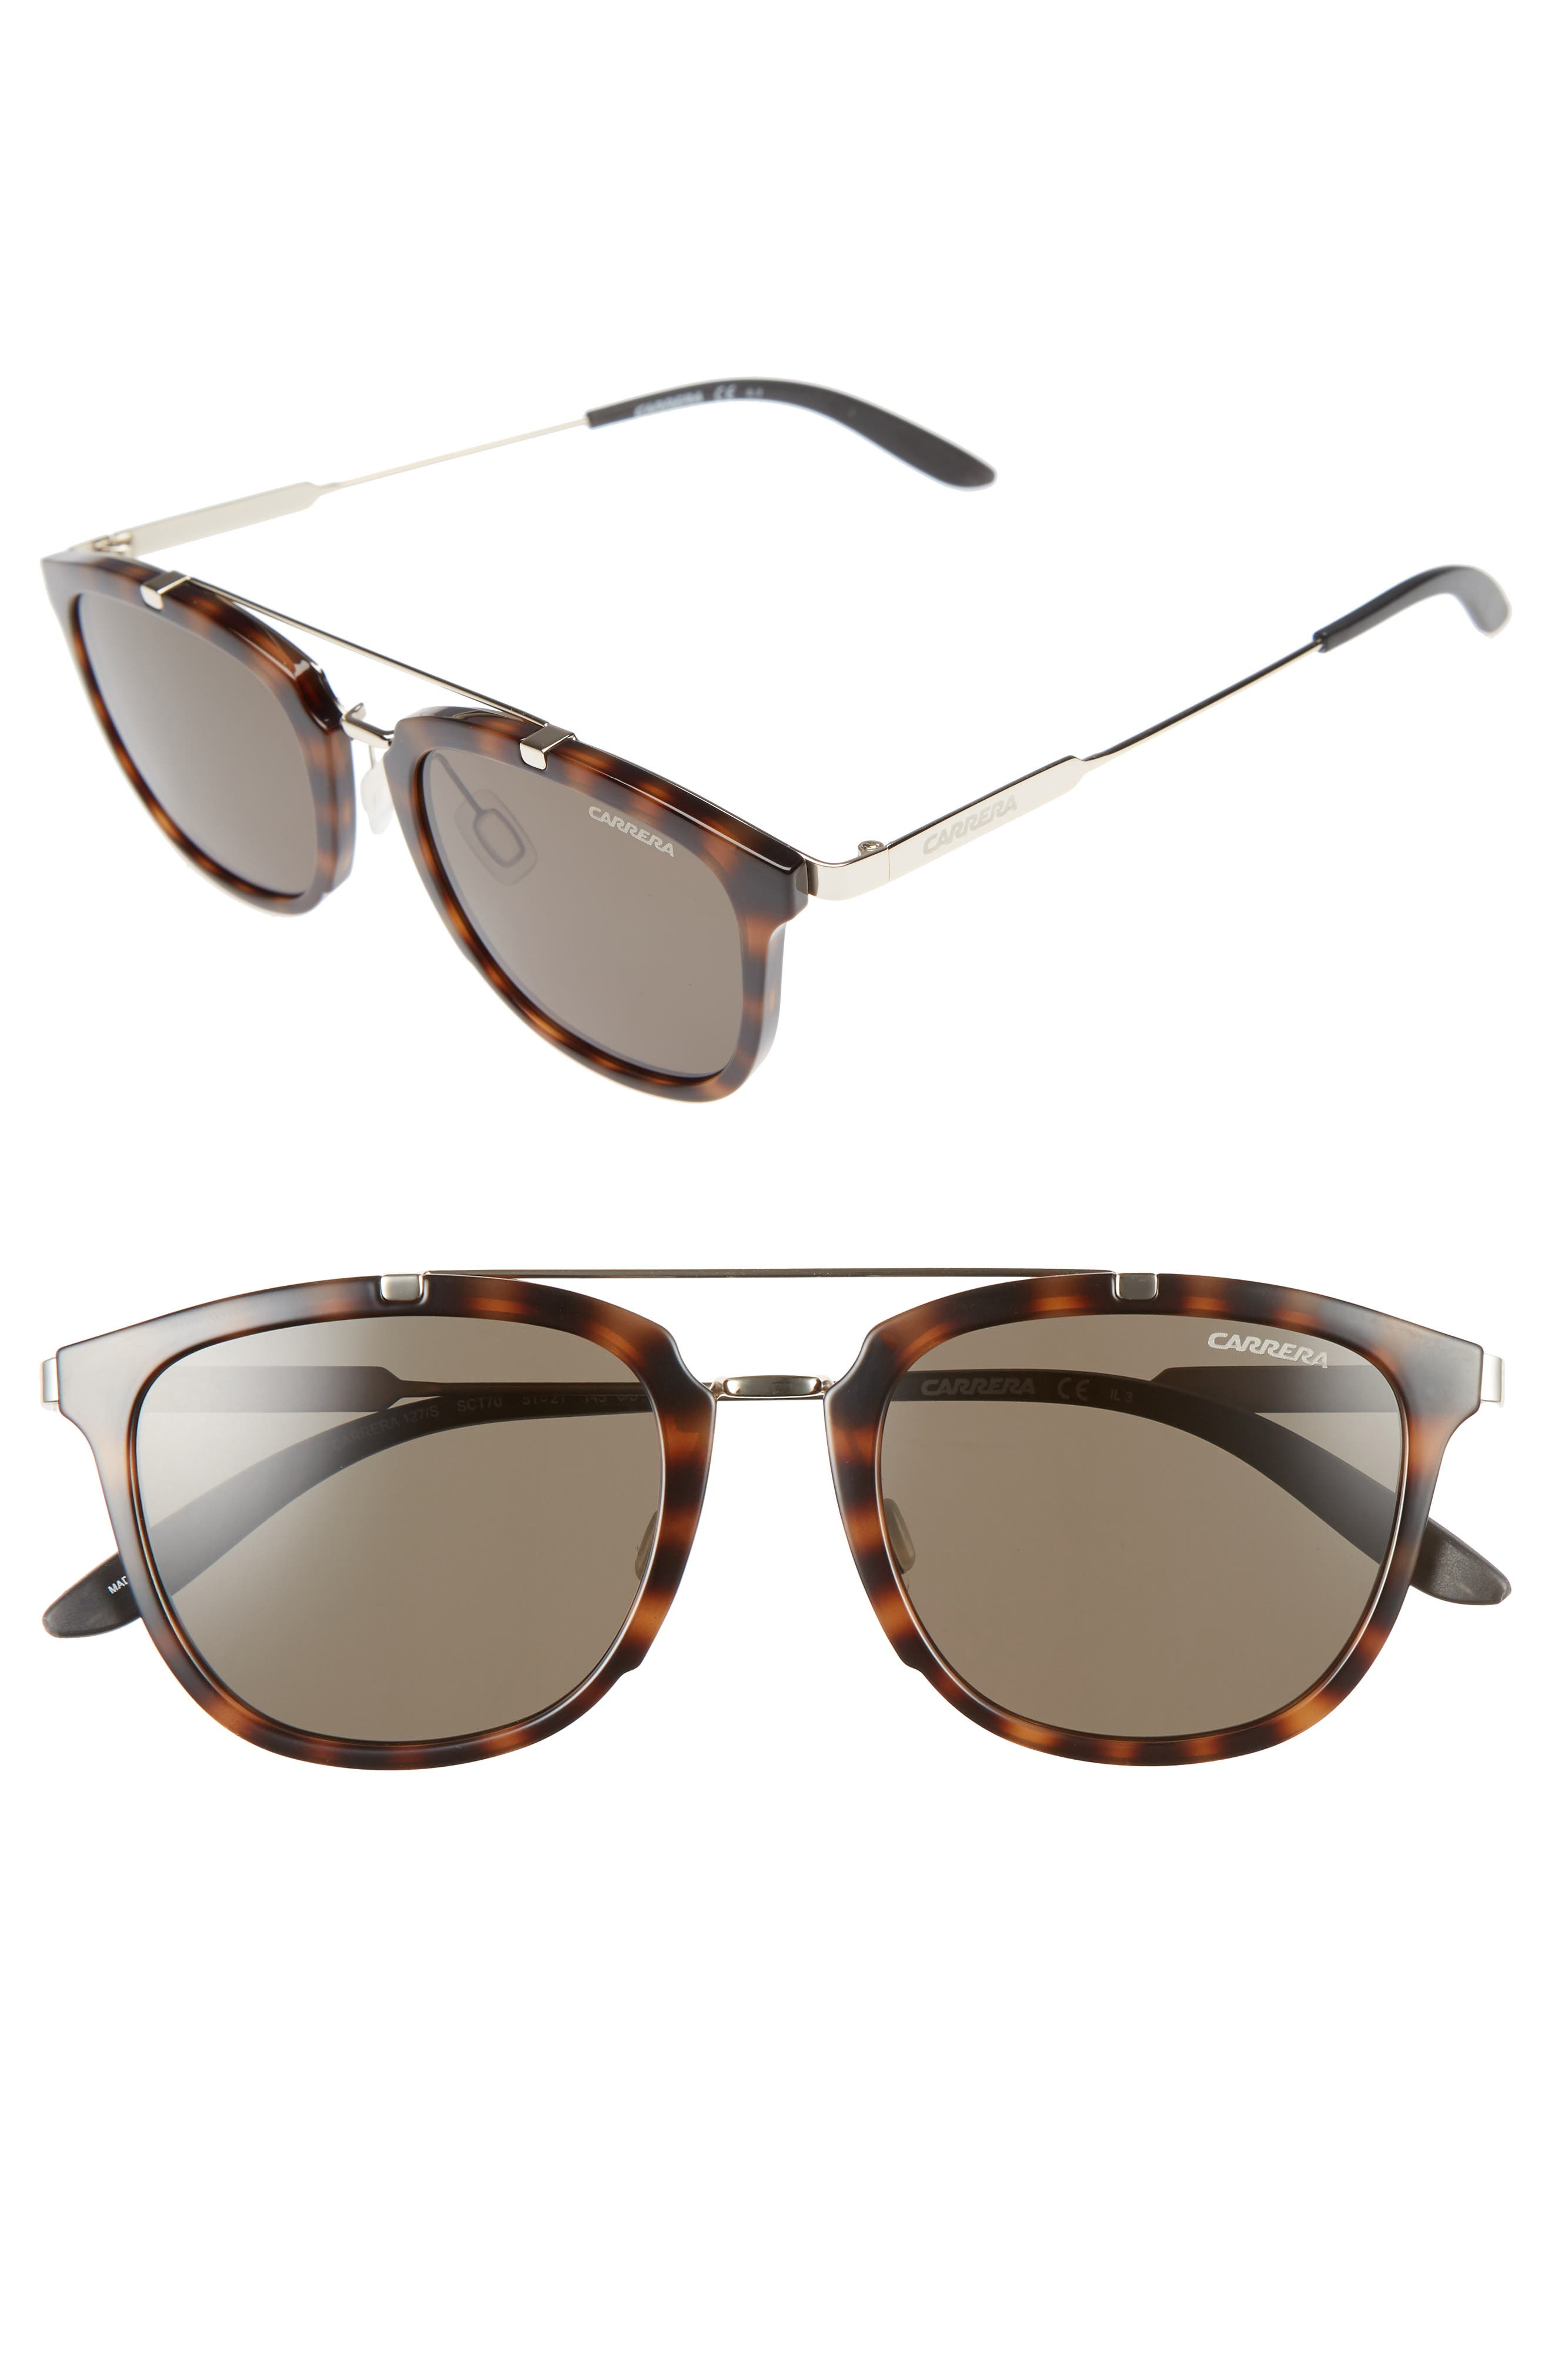 Carrera Eyewear 51mm Retro Sunglasses